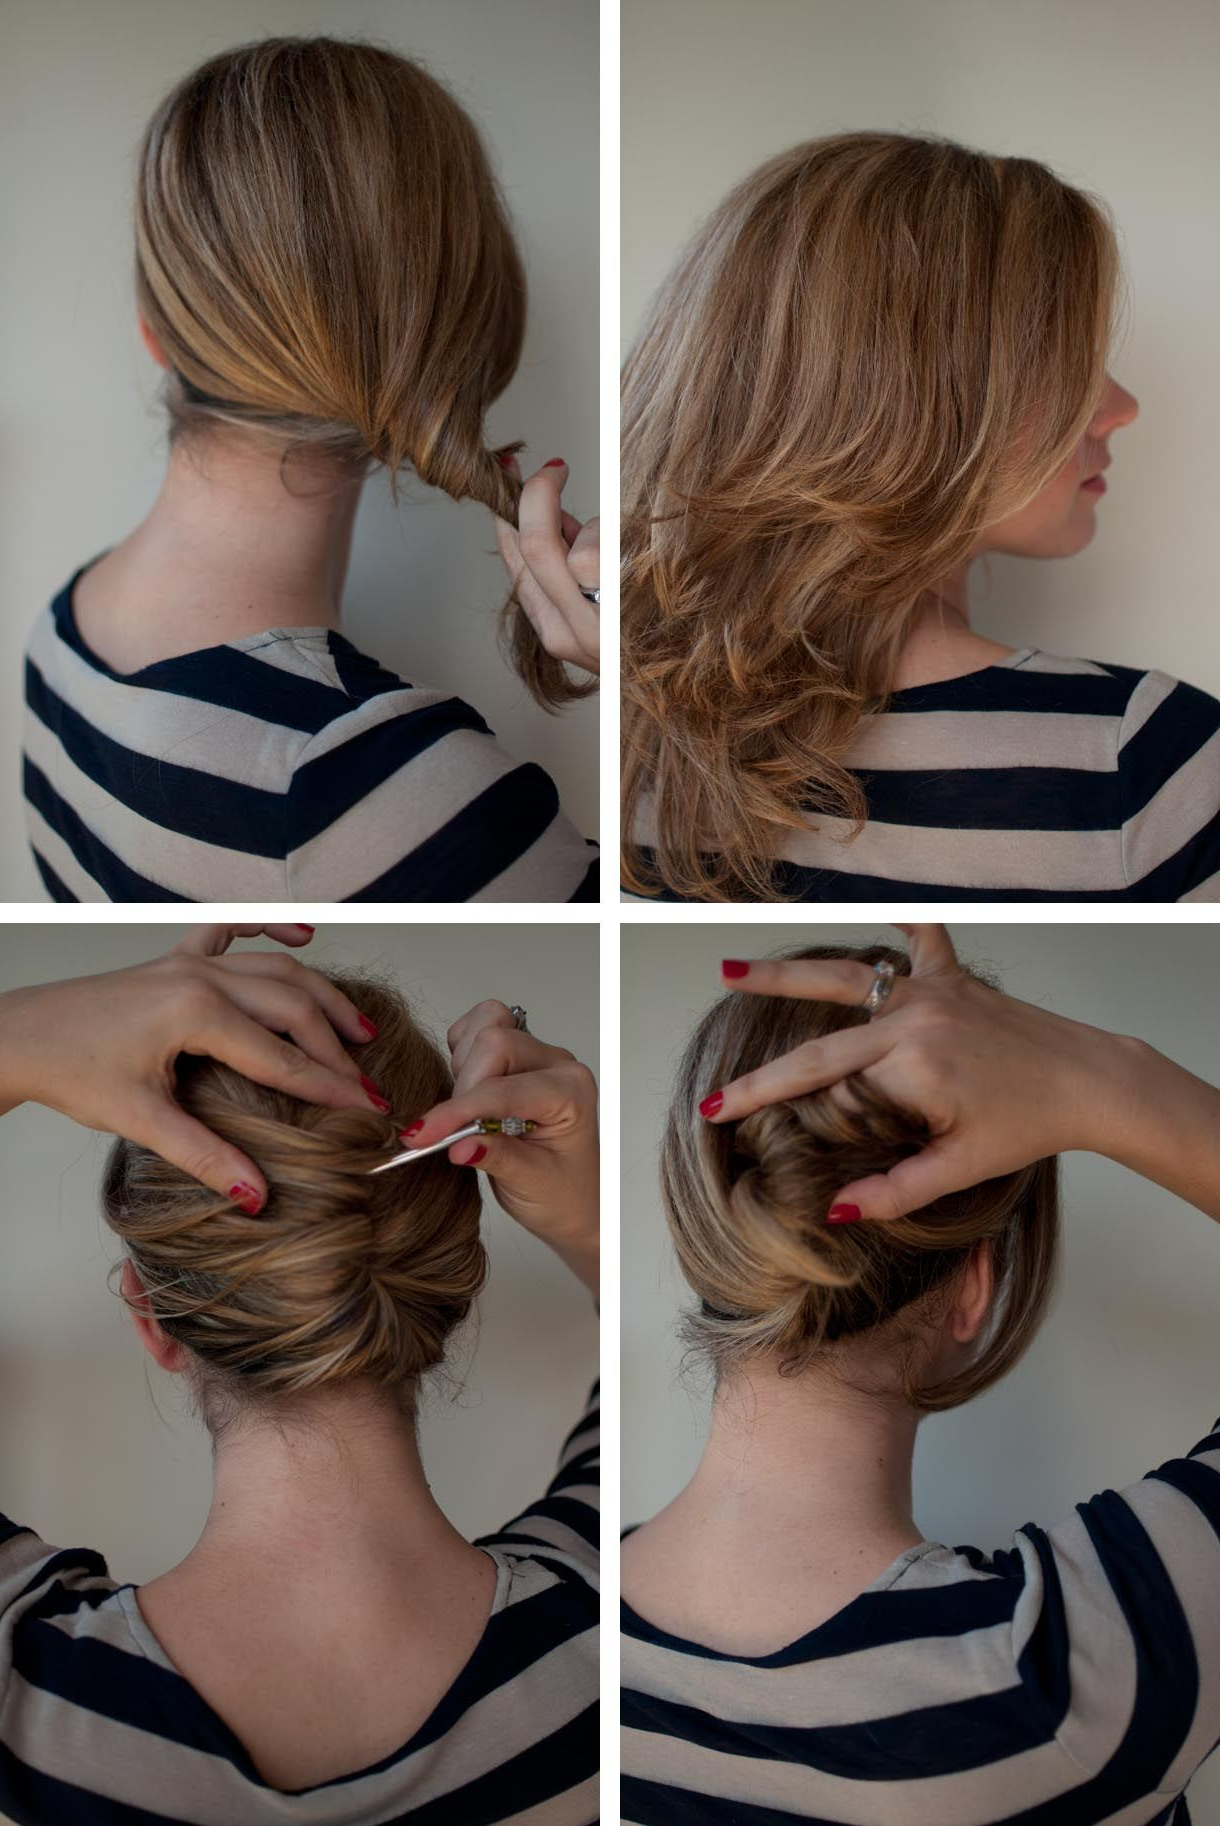 Hairstyles For Hairsticks (View 15 of 20)